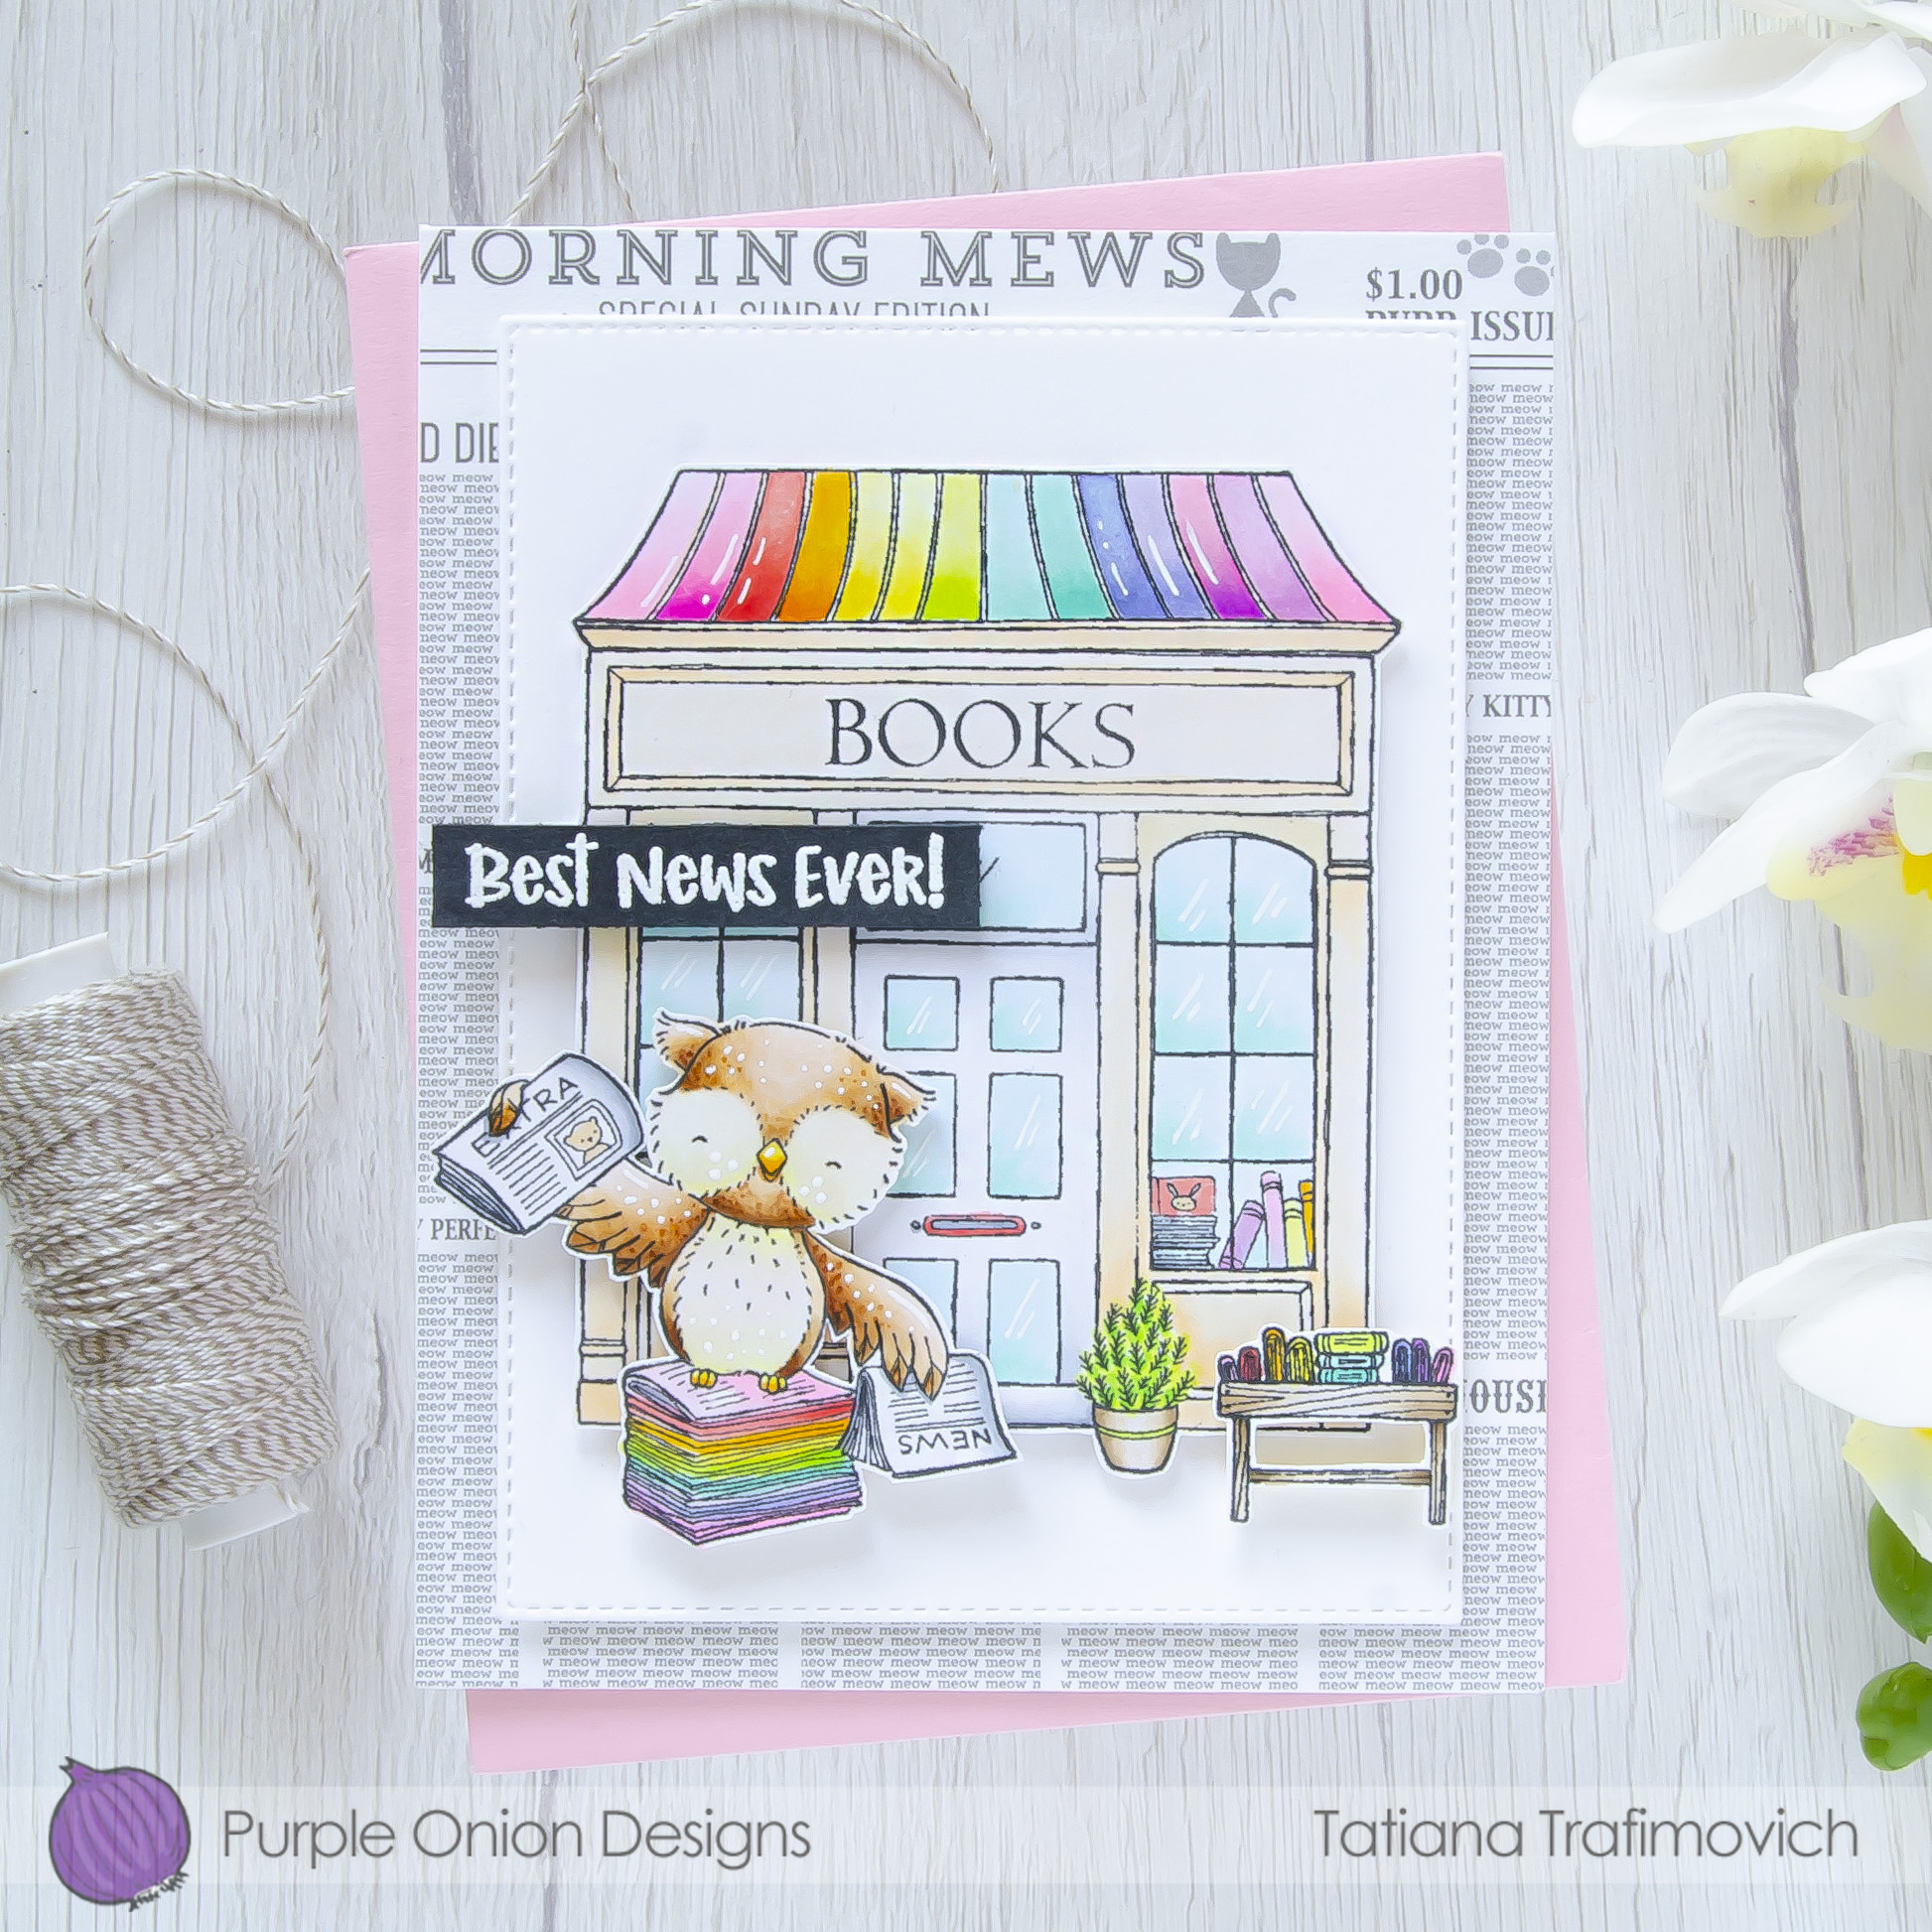 Best News Ever! #handmade card by Tatiana Trafimovich #tatianacraftandart - stamps by Purple Onion Designs